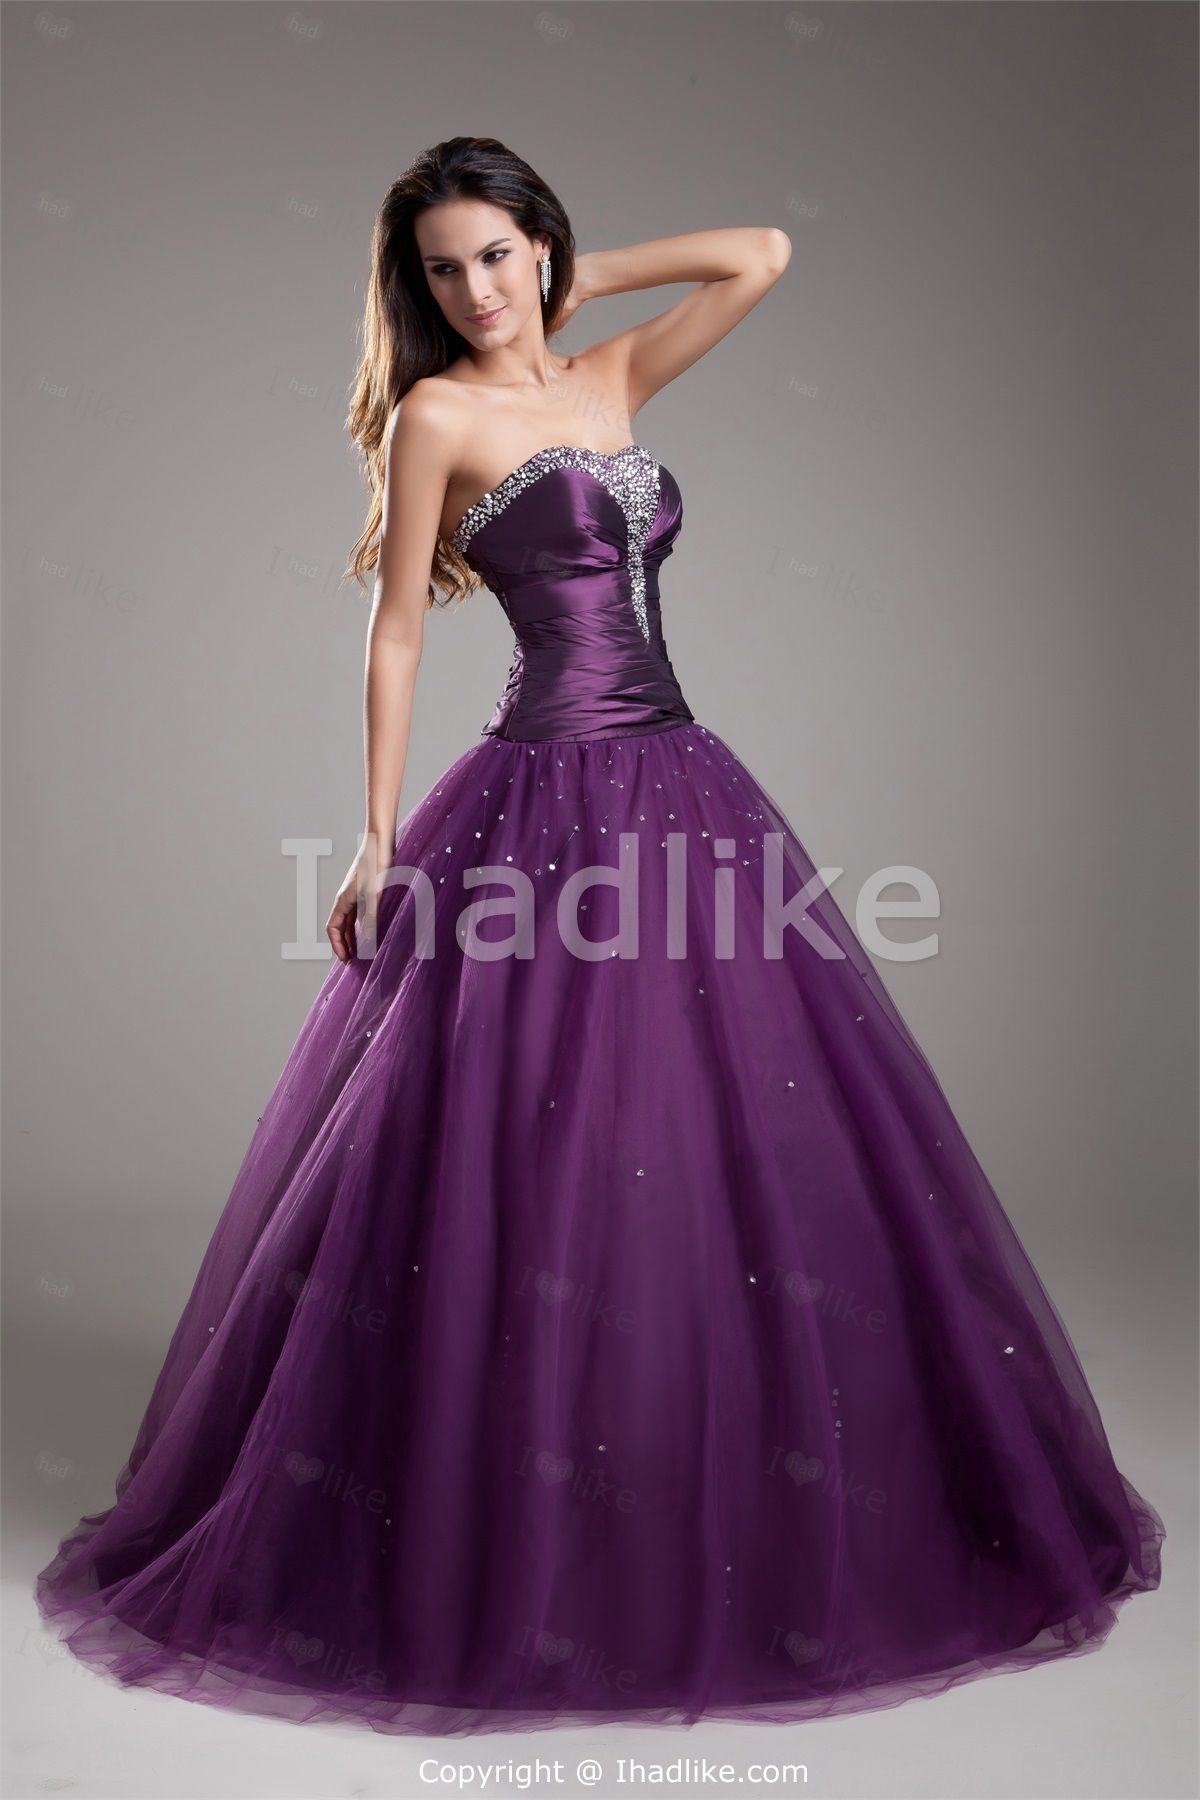 Ball gown prom dresses 2014 - Purple Taffeta Tulle Sweetheart Ball Gown Floor Length Beading Prom Dress 2014 Special Occasion